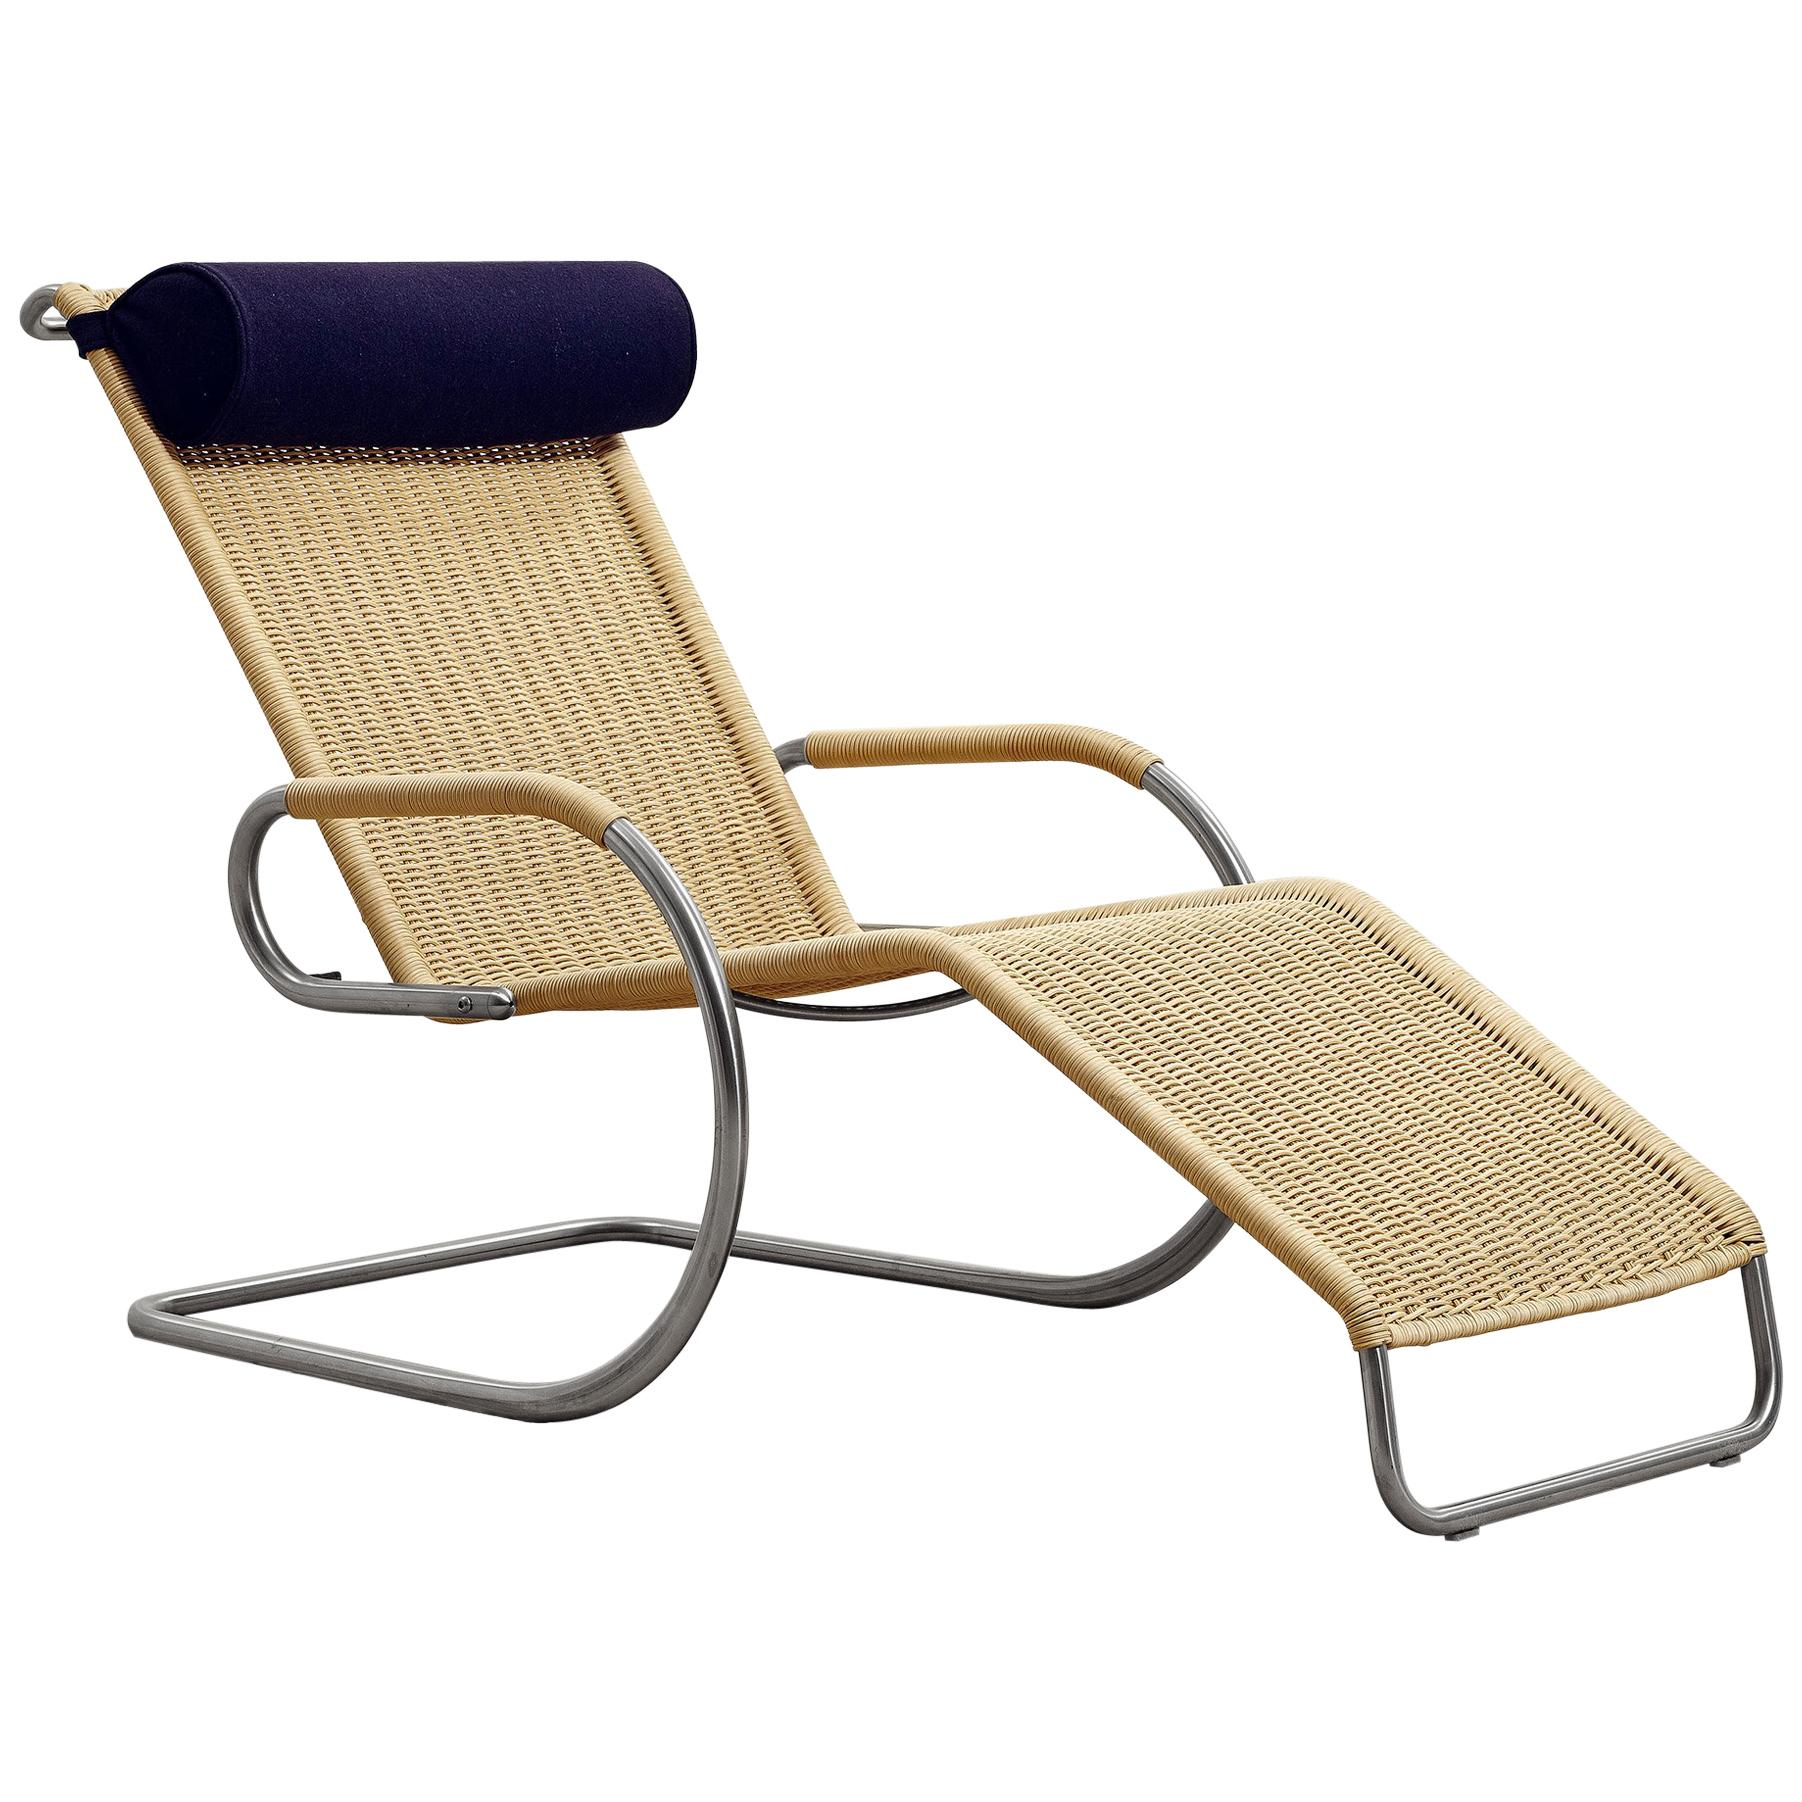 Wicker Chaise Longue U0027F42 1Eu0027 By Mies Van Der Rohe, Designed In